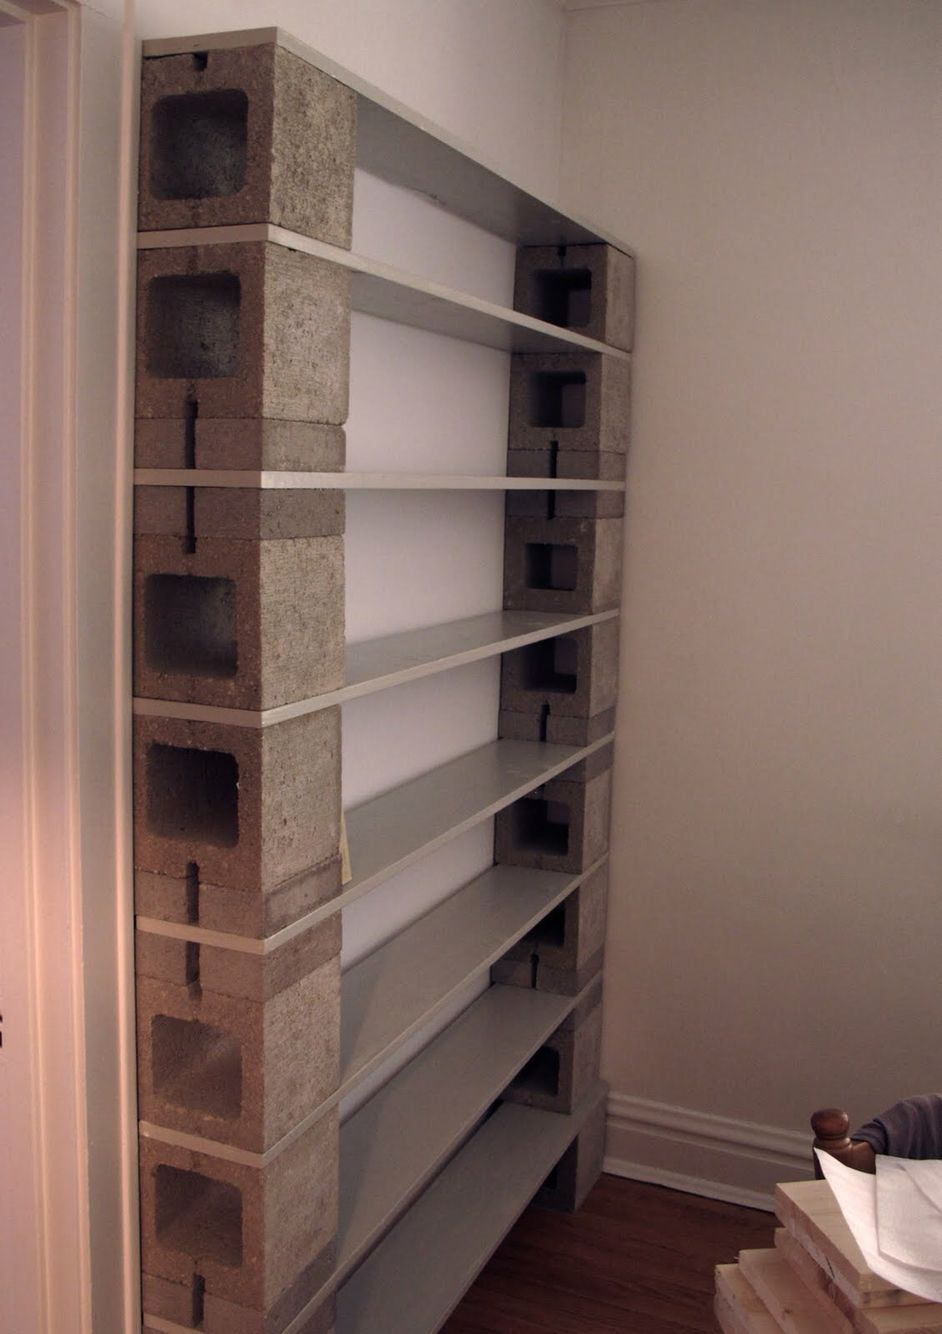 cinder block bookcase bookshelves pinterest regal m bel bauen und diy m bel. Black Bedroom Furniture Sets. Home Design Ideas